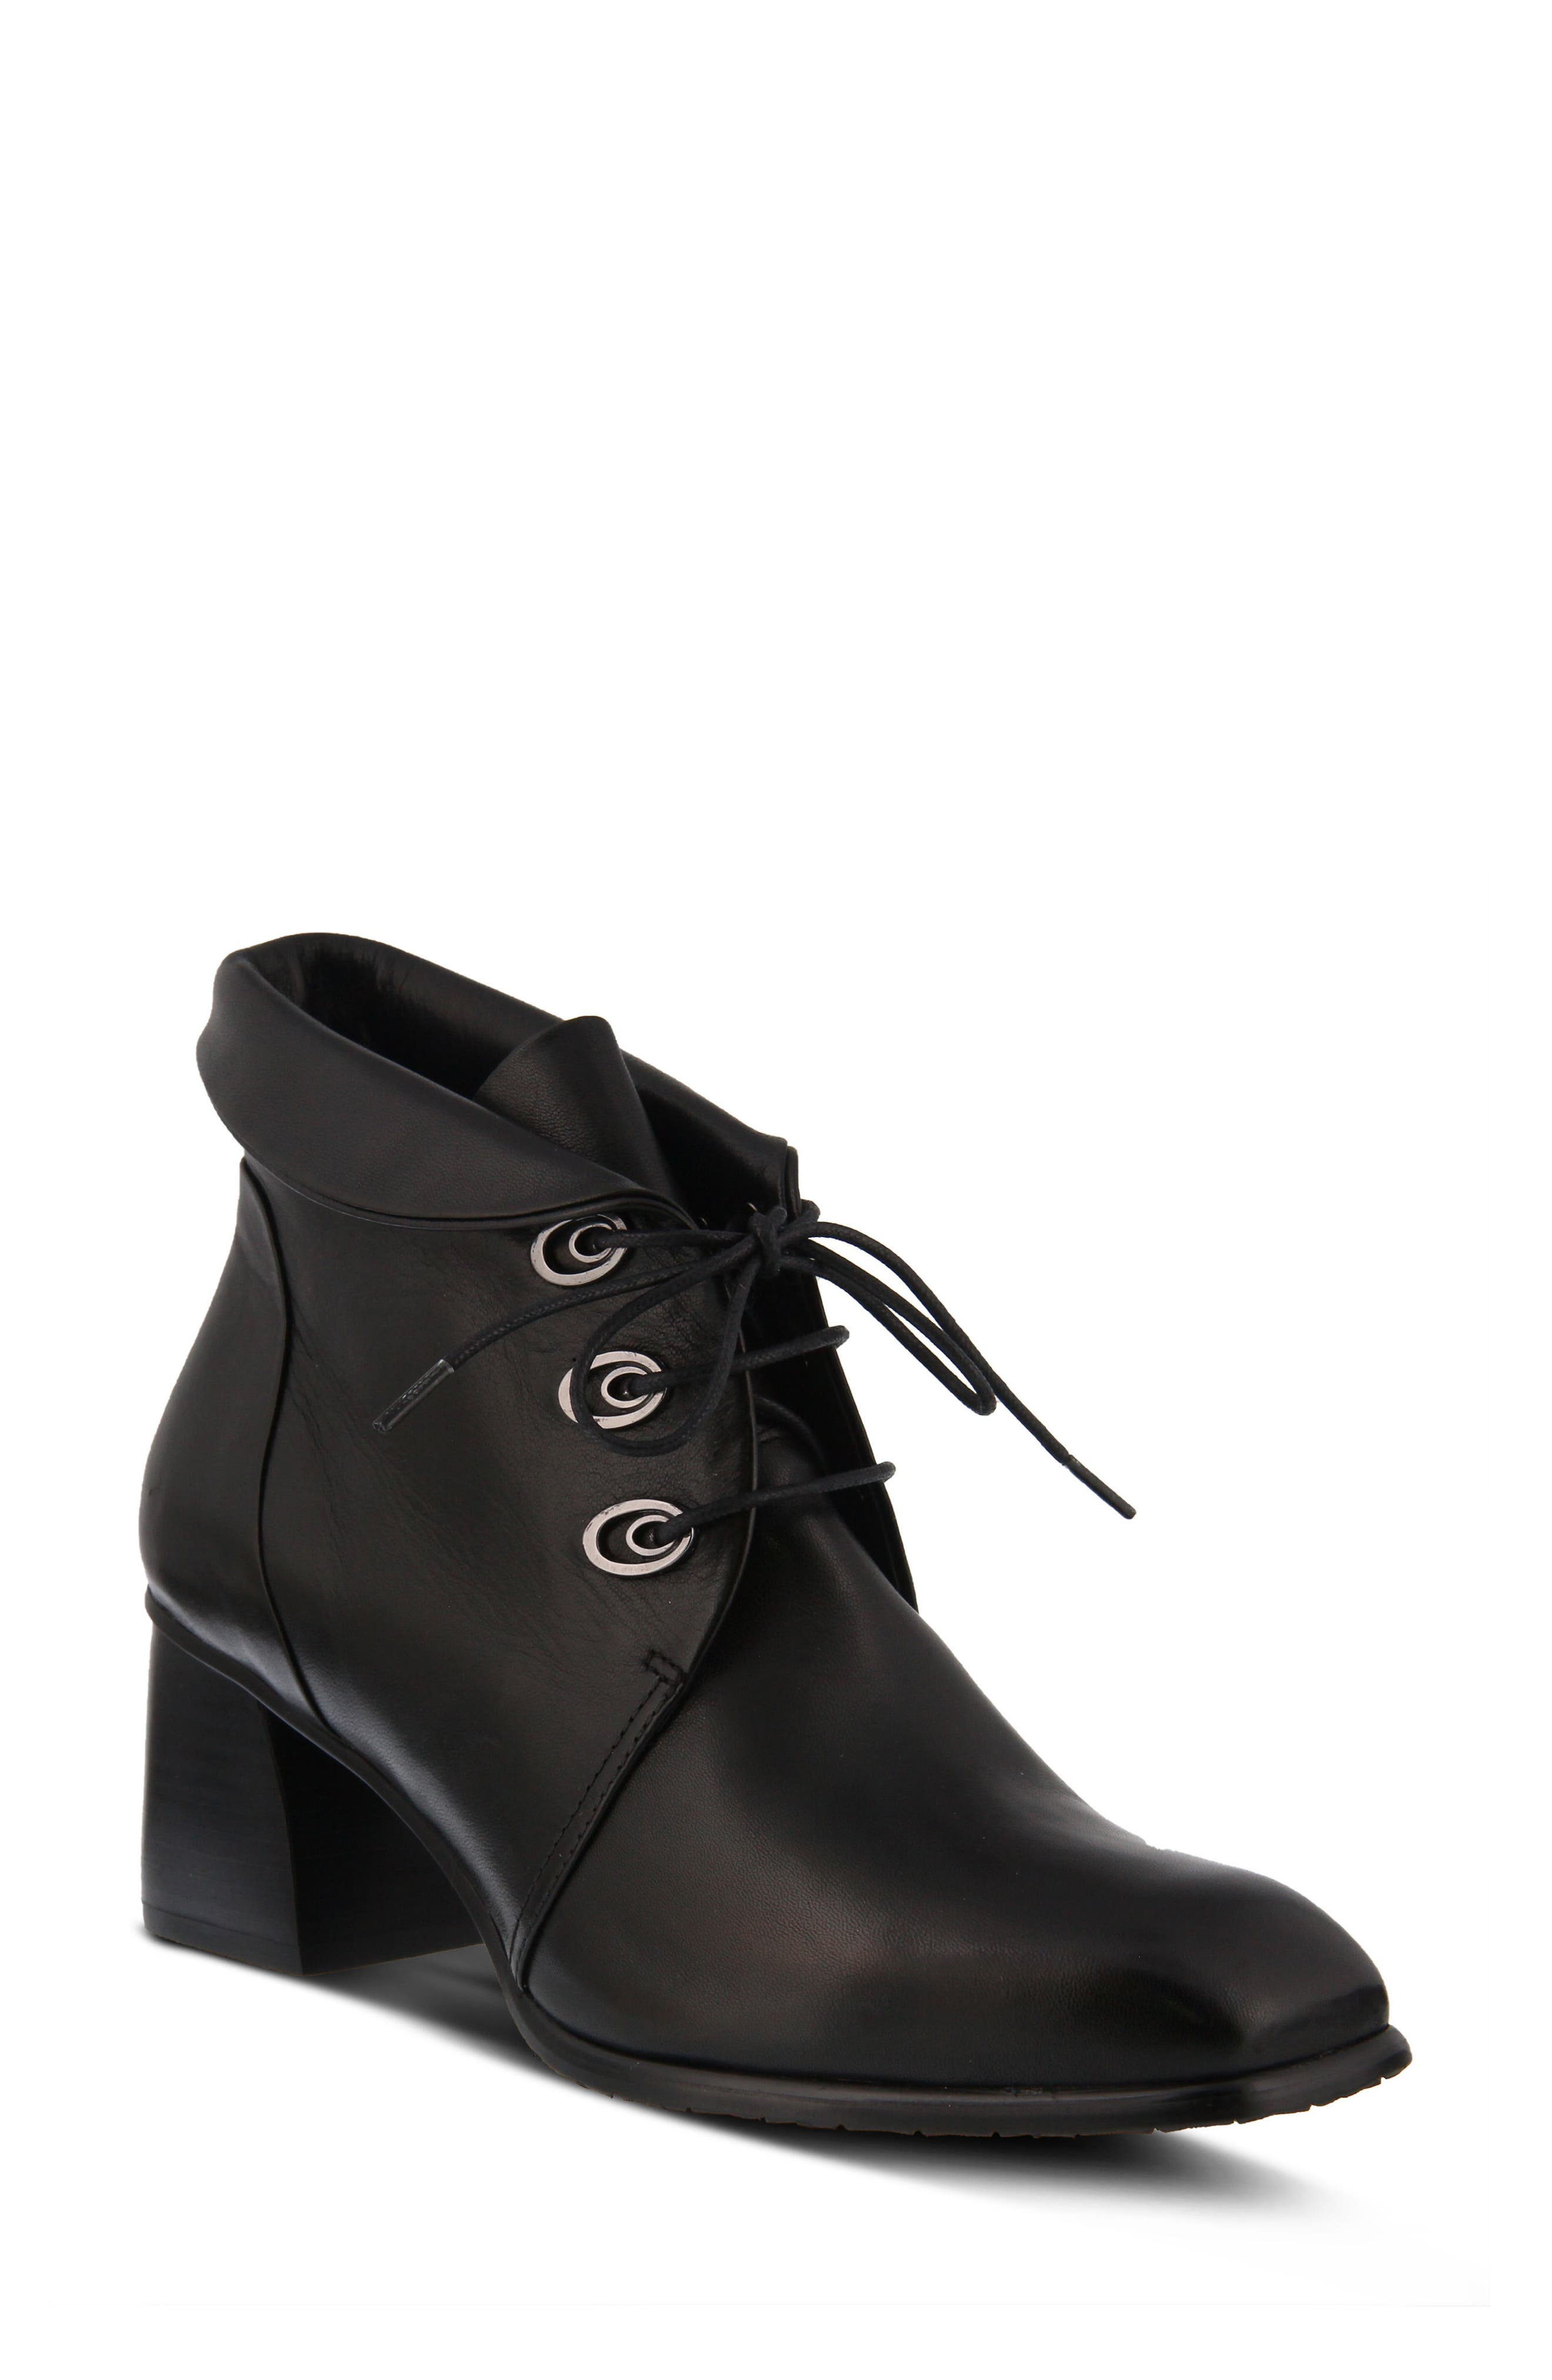 SPRING STEP,                             Adorina Bootie,                             Main thumbnail 1, color,                             BLACK LEATHER